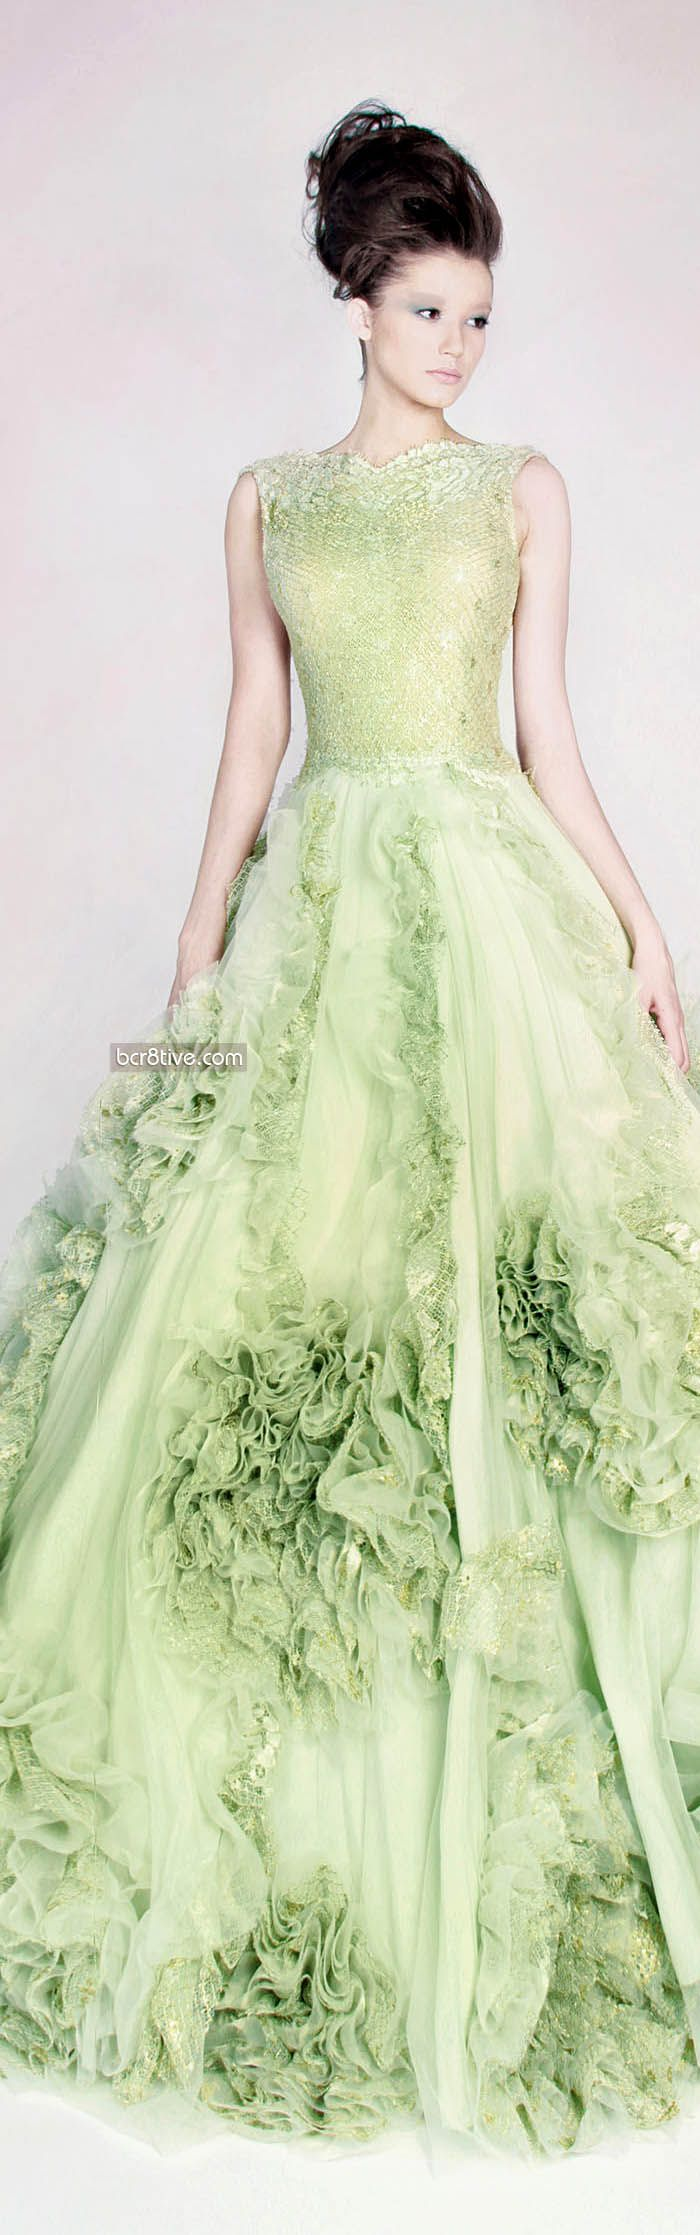 best itus all about the dress images on pinterest cute